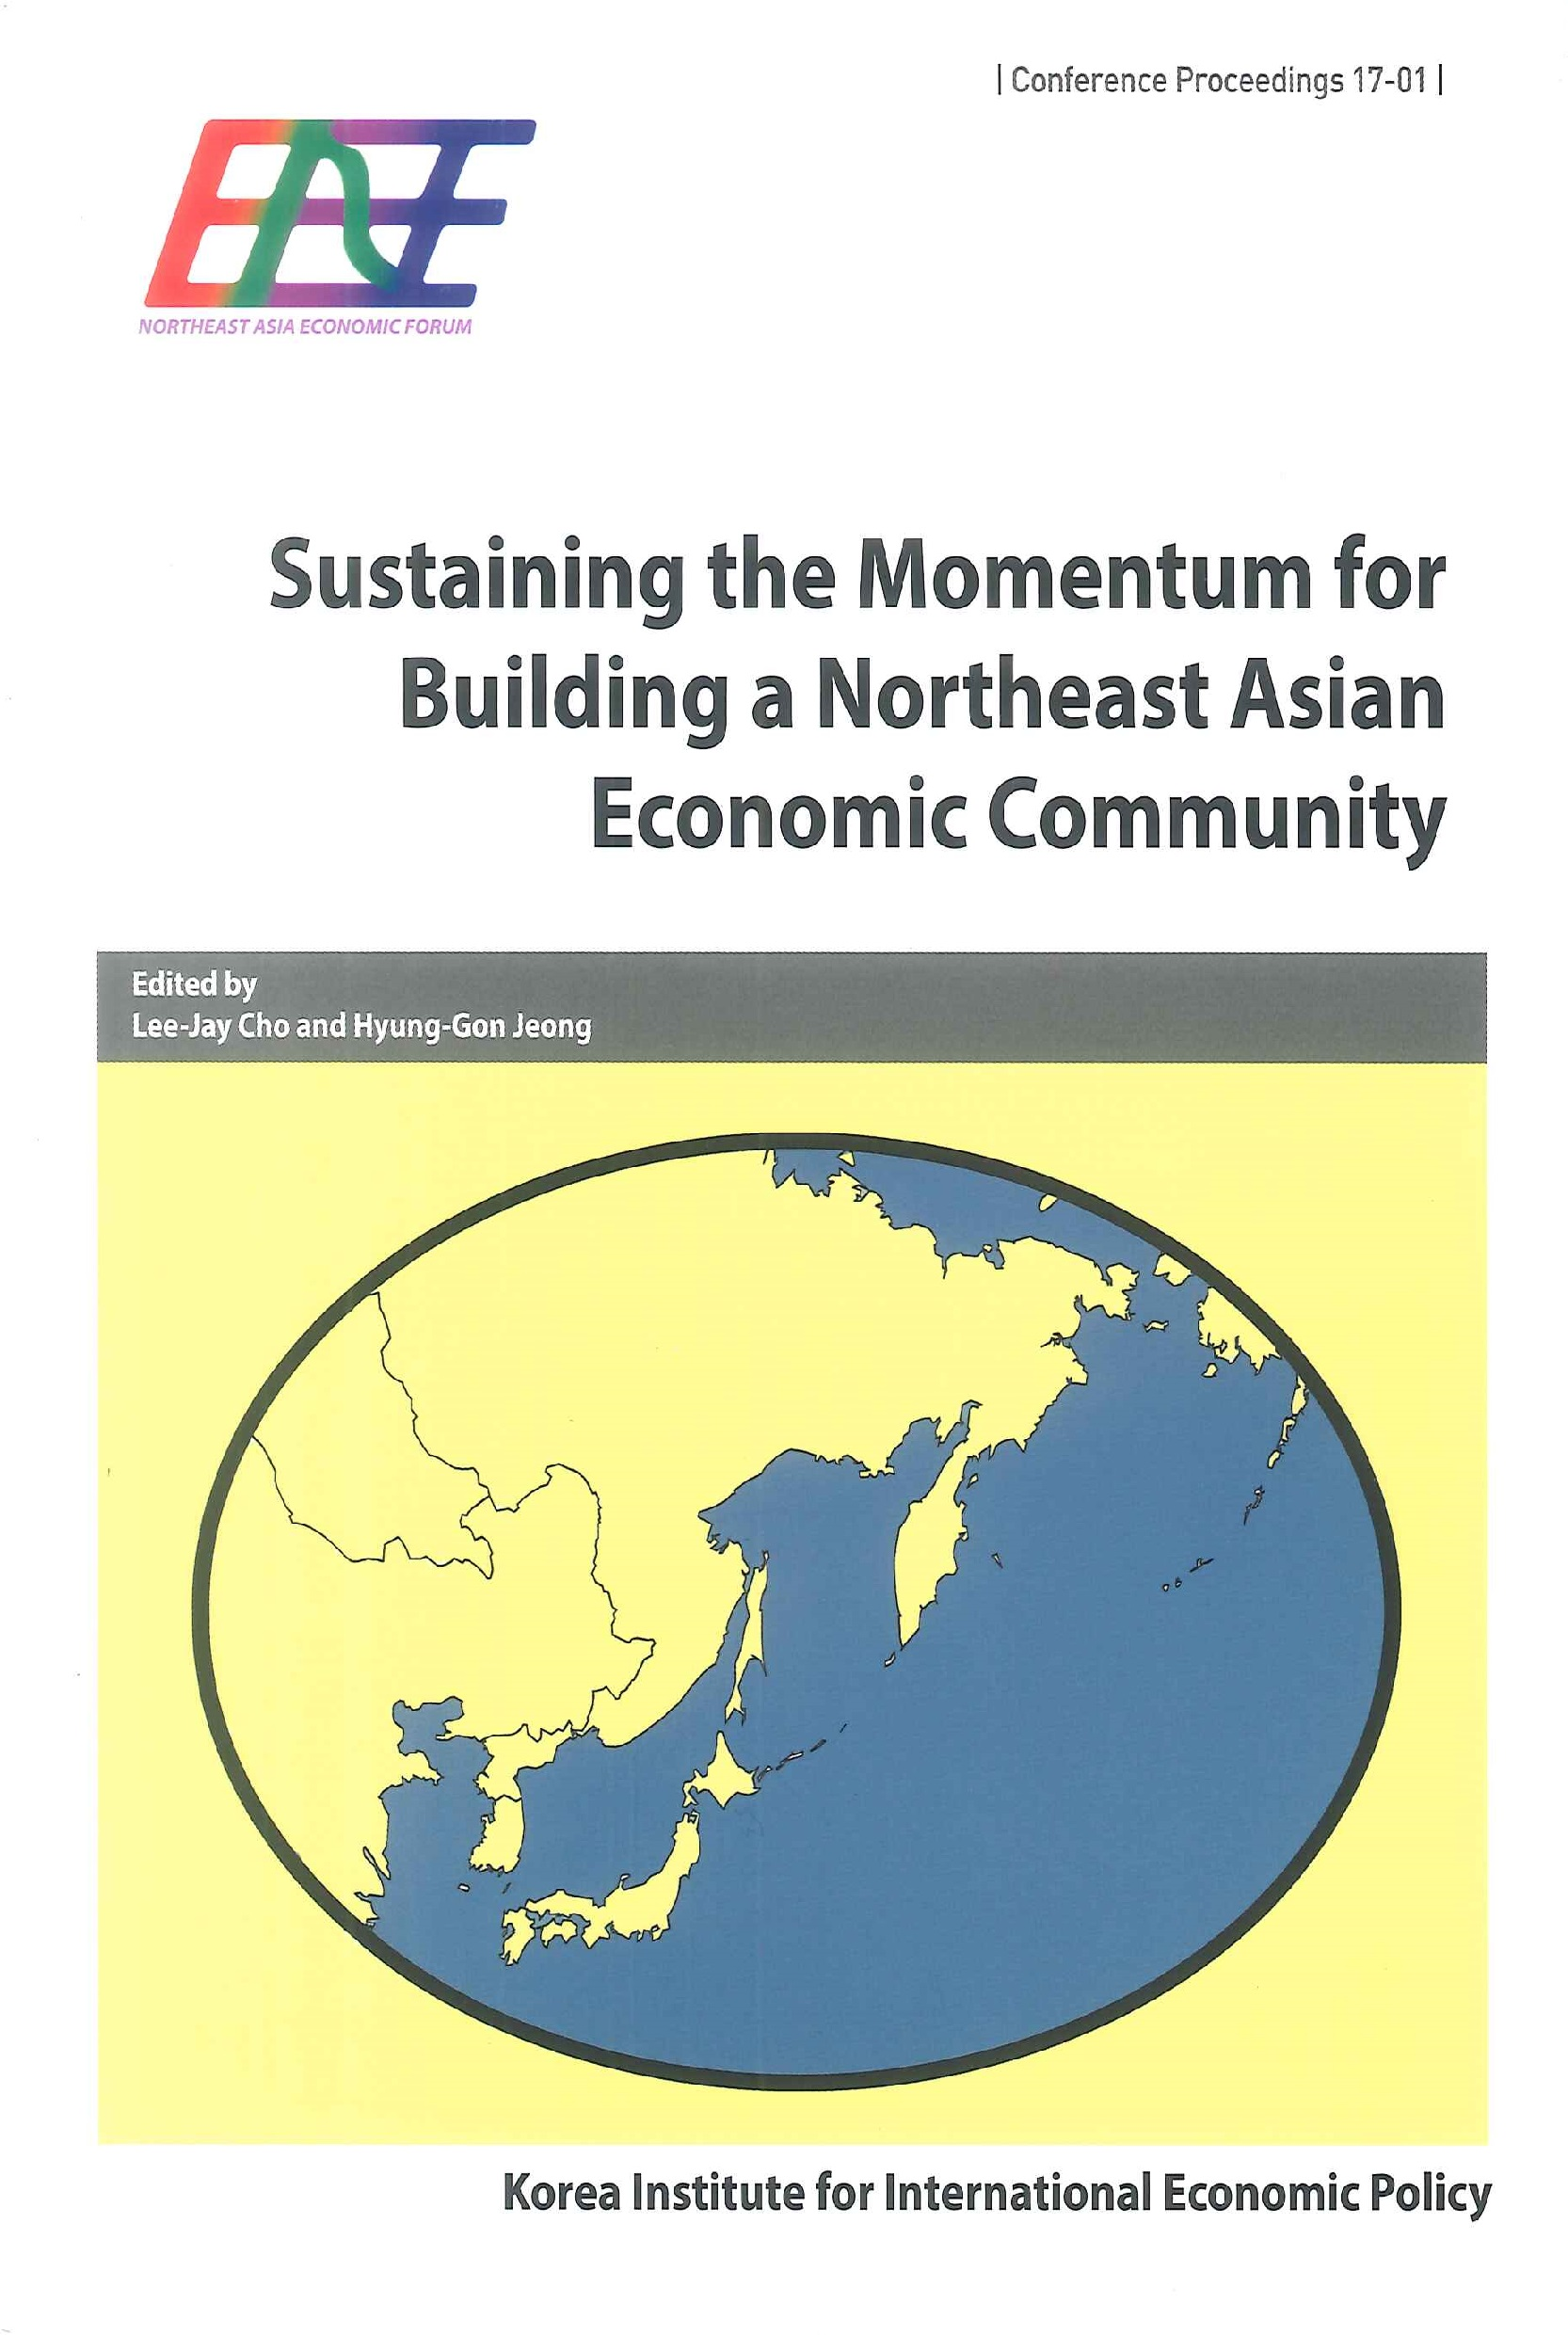 Sustaining the momentum for building a Northeast Asian Economic Community